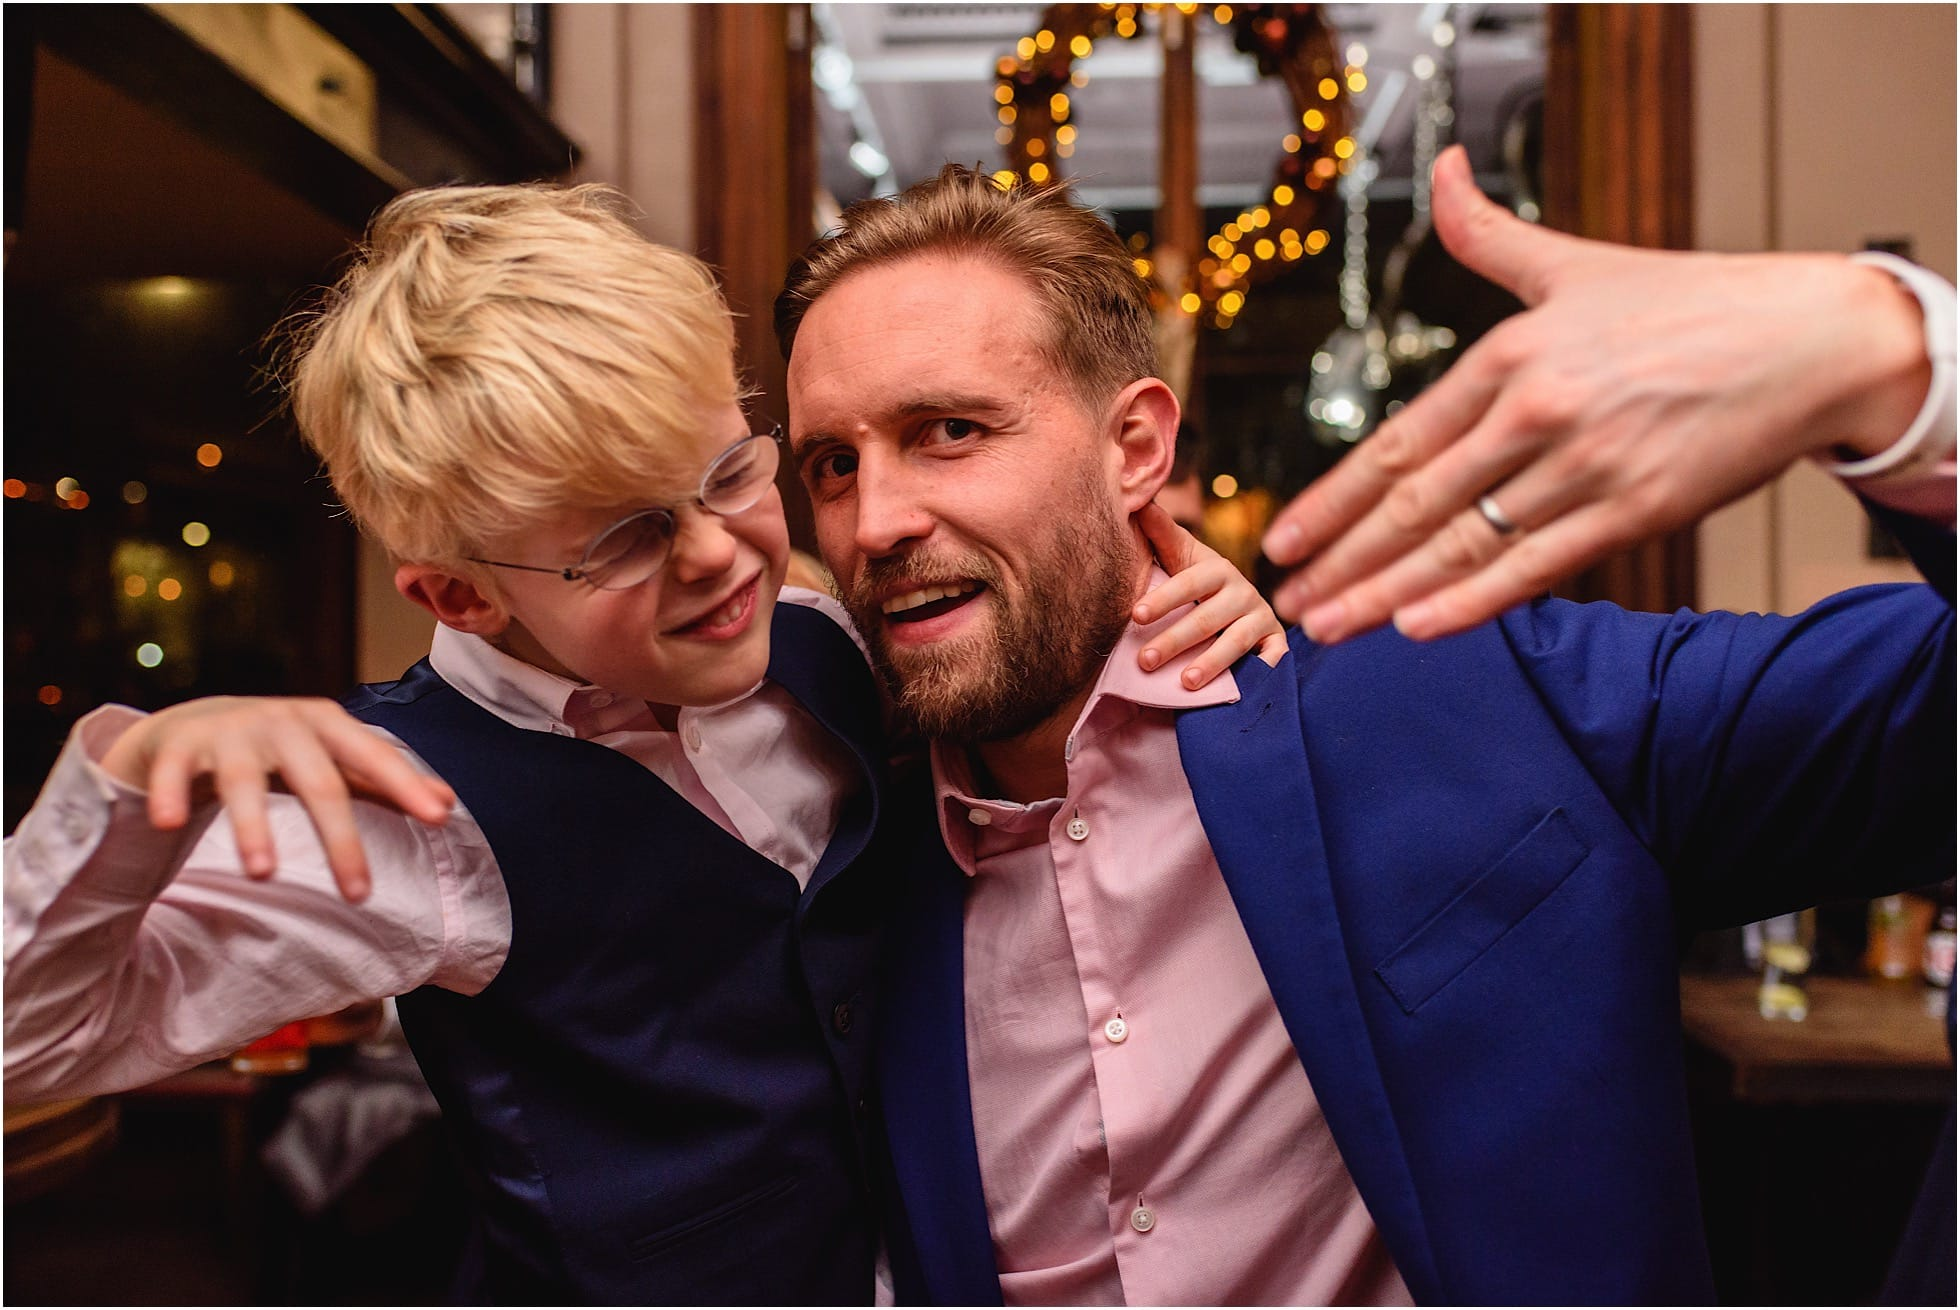 father and son looking cool